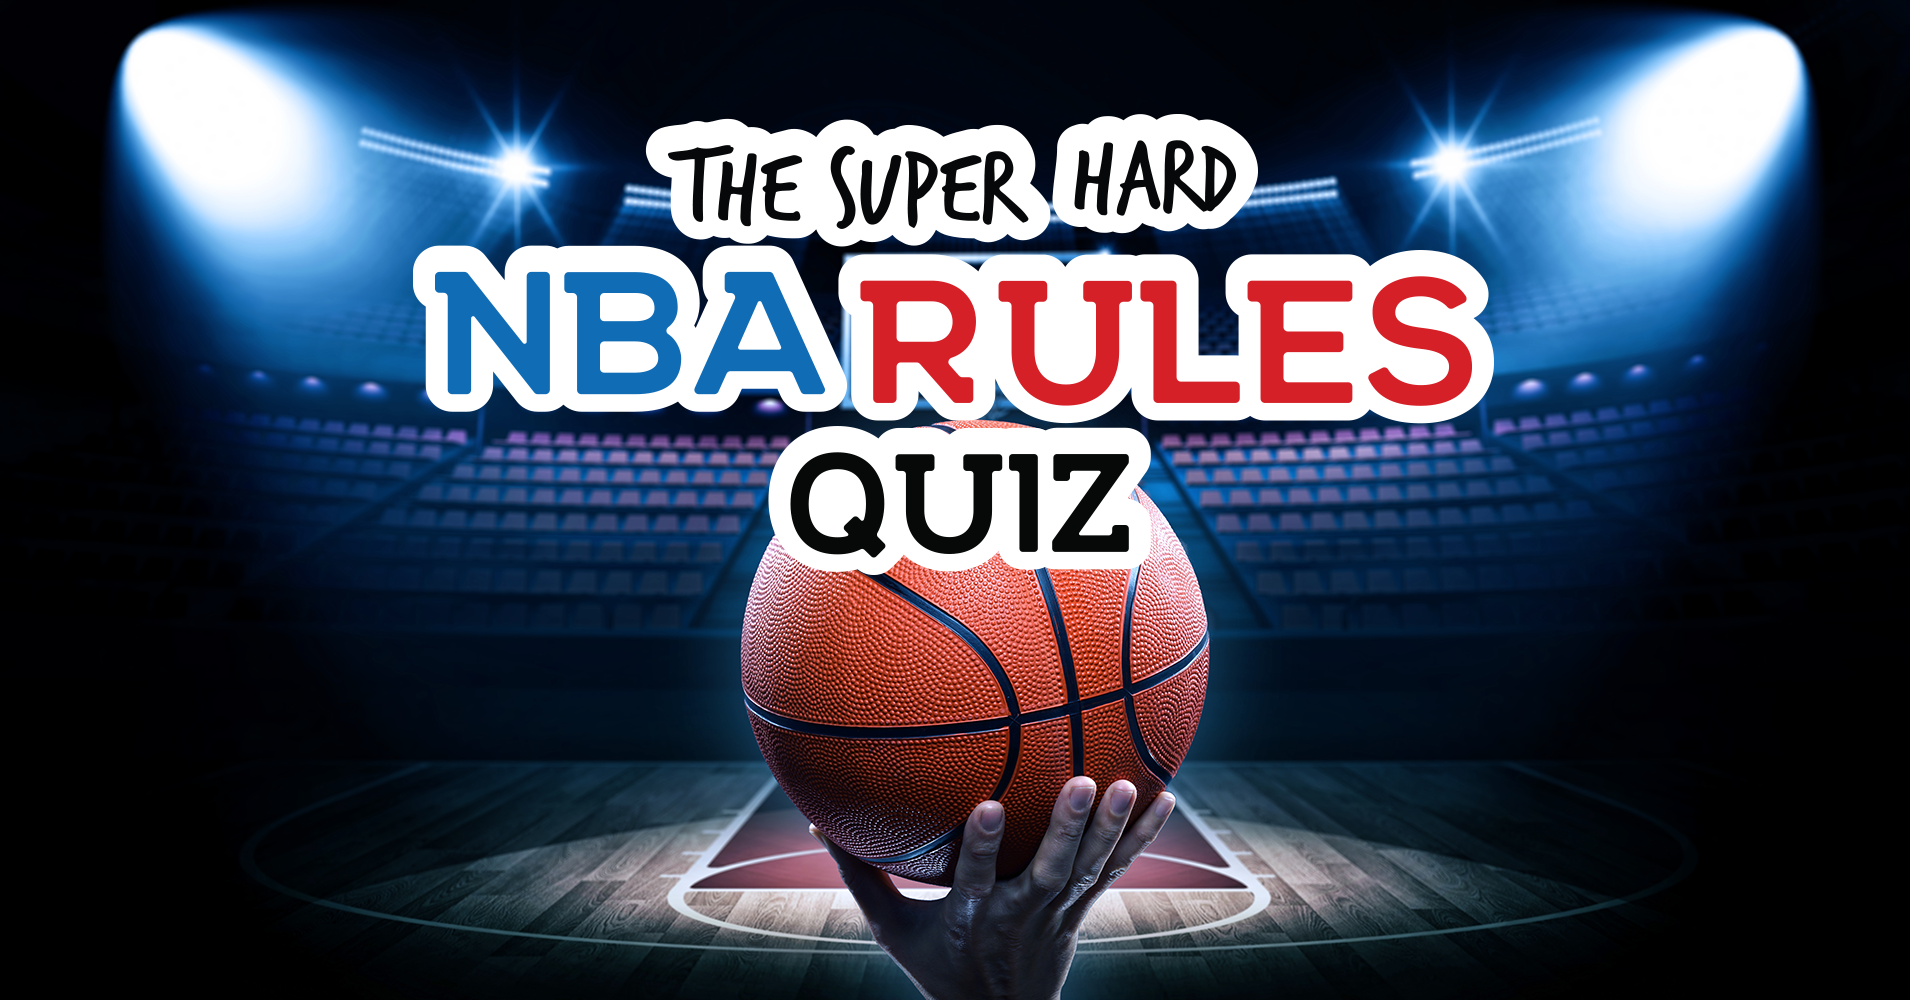 The Super Hard Nba Rules Quiz Quiz Quizony Com